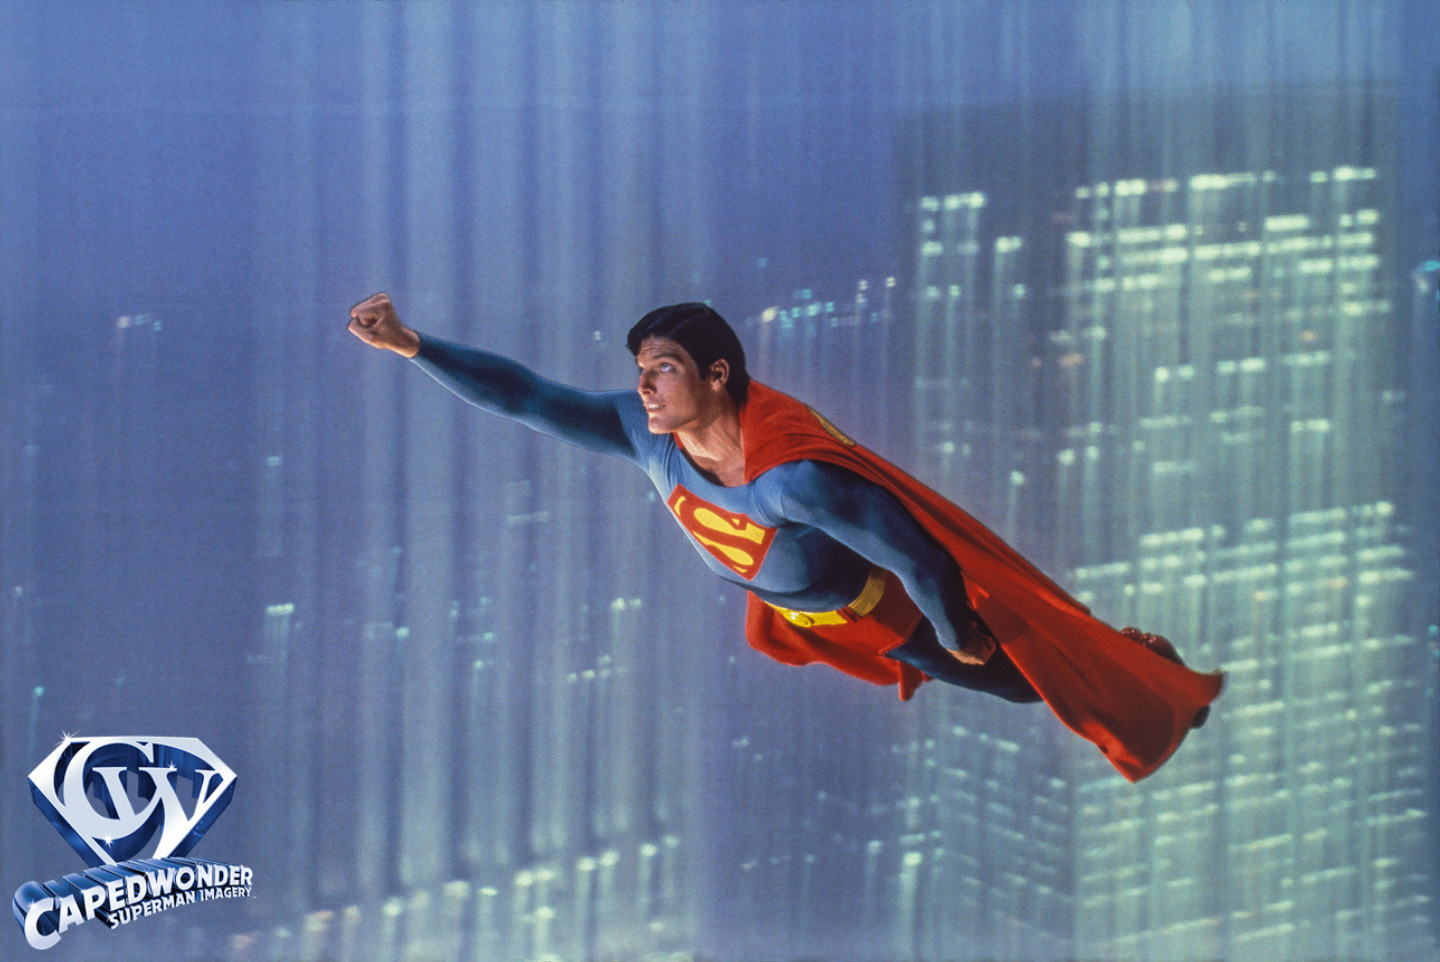 Superman the movie gallery the gift of flight capedwonder cw stm gift of flight 21 publicscrutiny Gallery